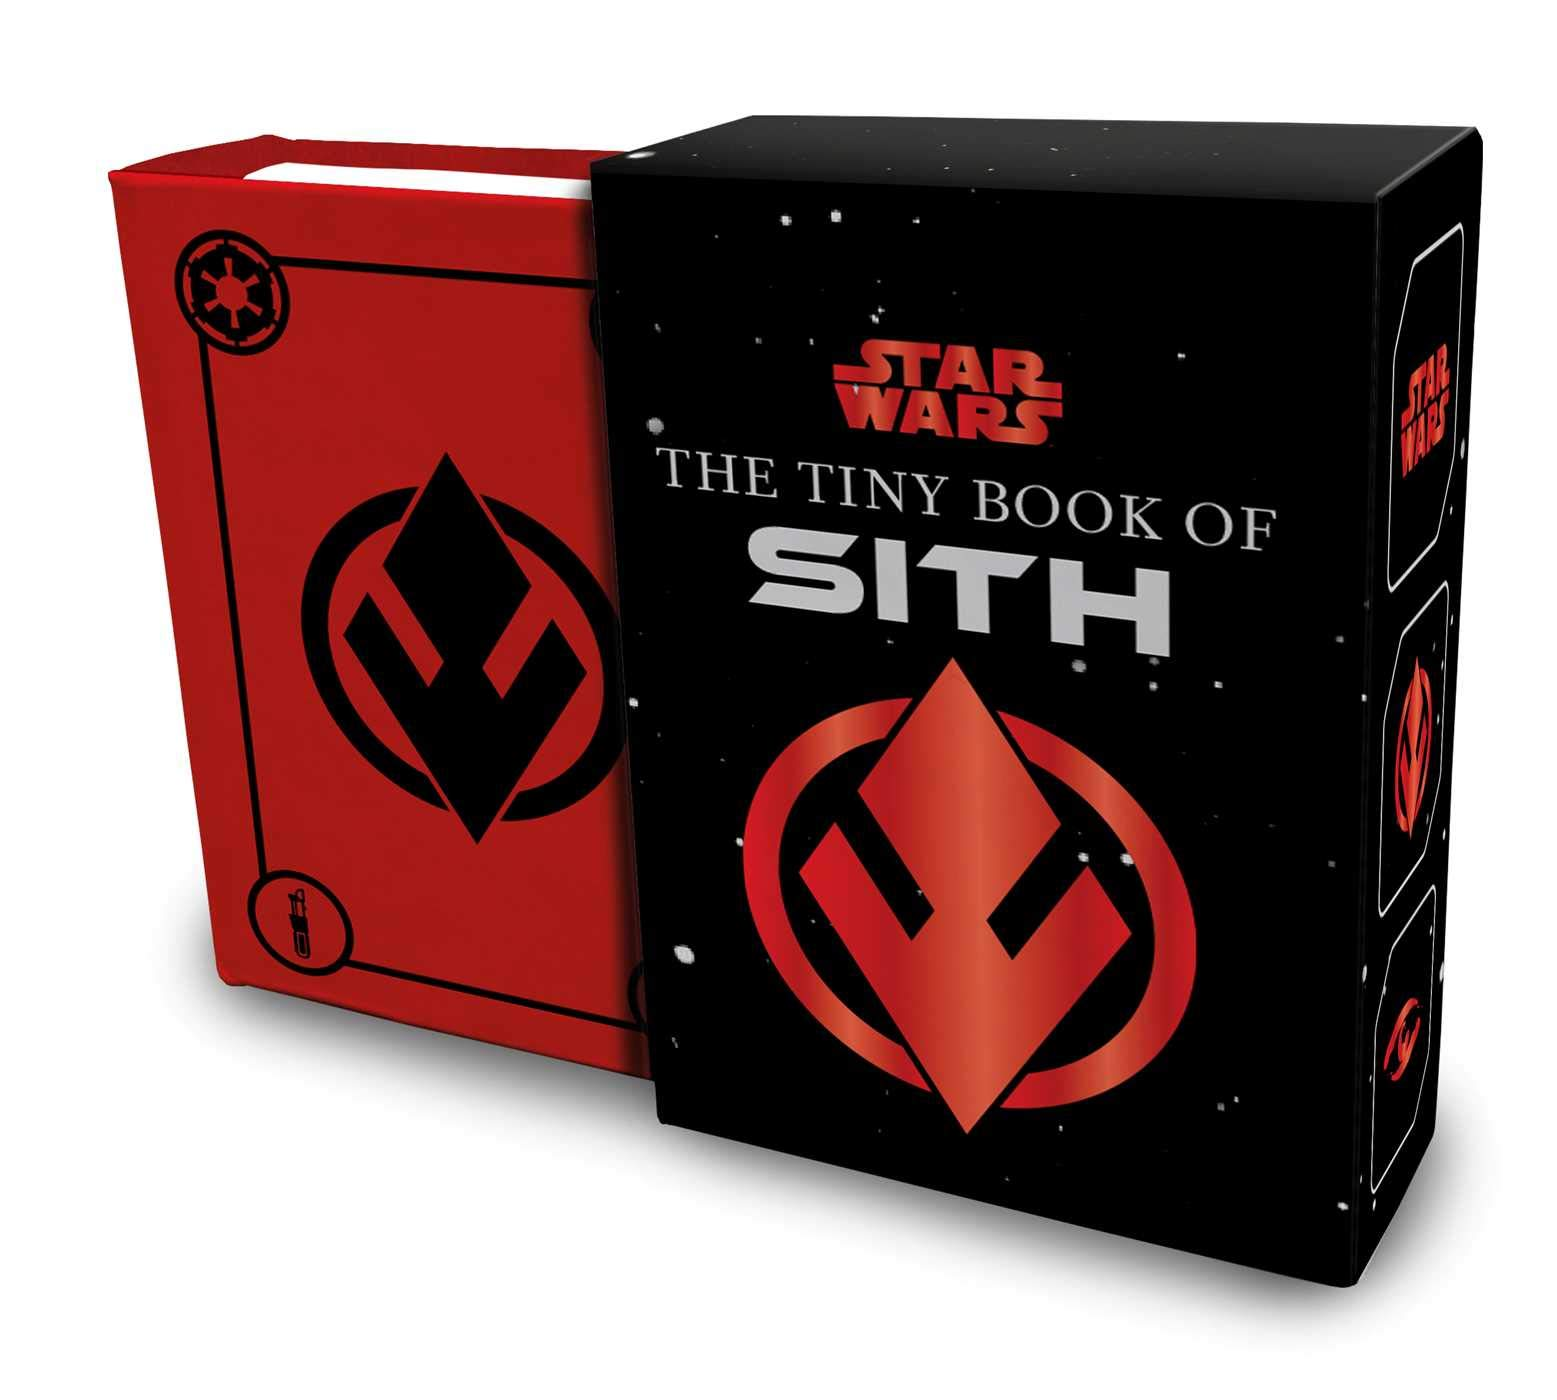 Star Wars: The Tiny Book of Sith